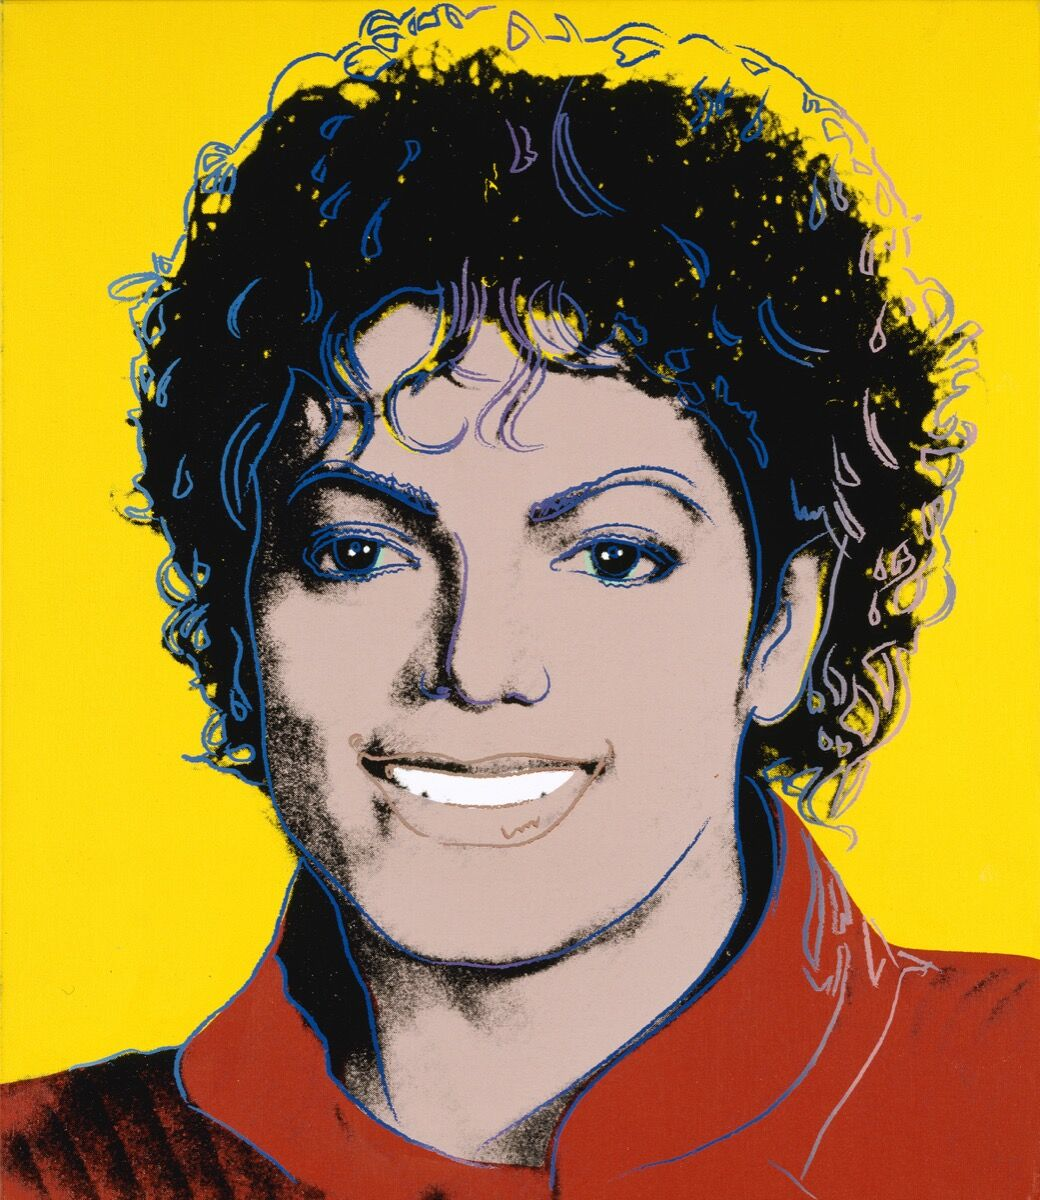 Andy Warhol, Michael Jackson, 1984. © 2018 The Andy Warhol Foundation for the Visual Arts, Inc. / Licensed by DACS, London. Courtesy of the National Portrait Gallery, Smithsonian Institution, Washington D.C.